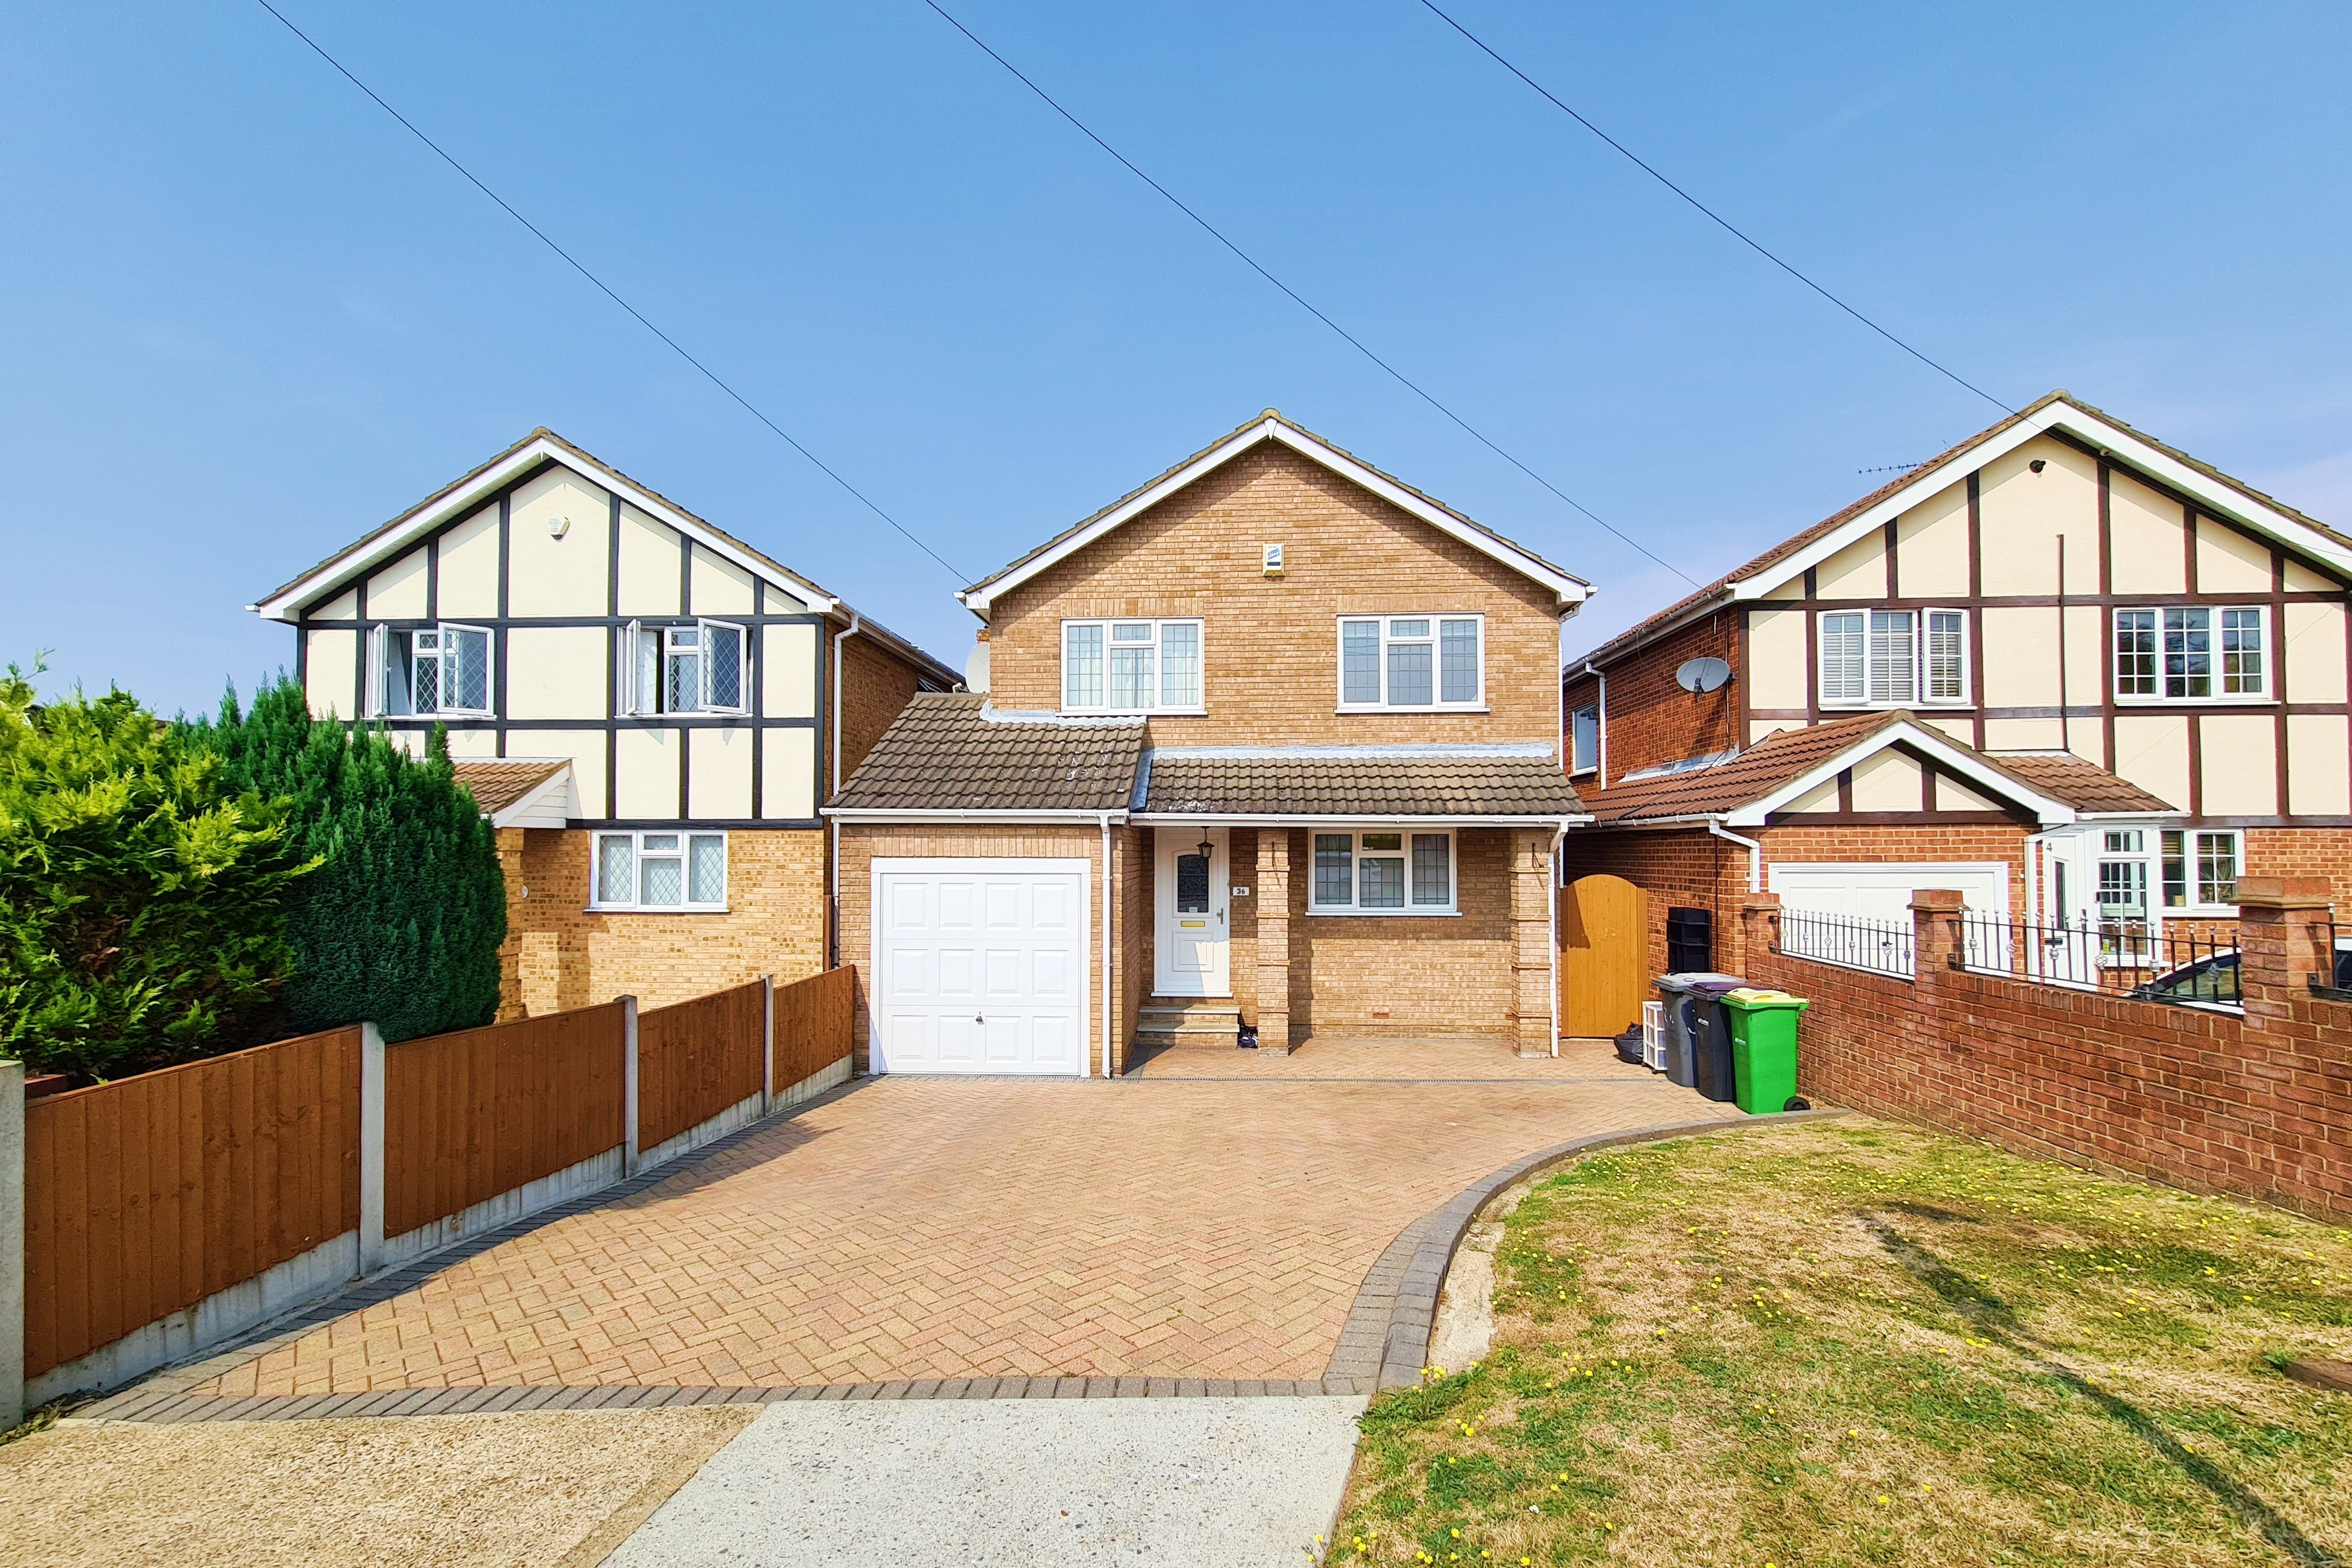 4 bed detached house to rent in Daws Heath Road, Rayleigh - Property Image 1